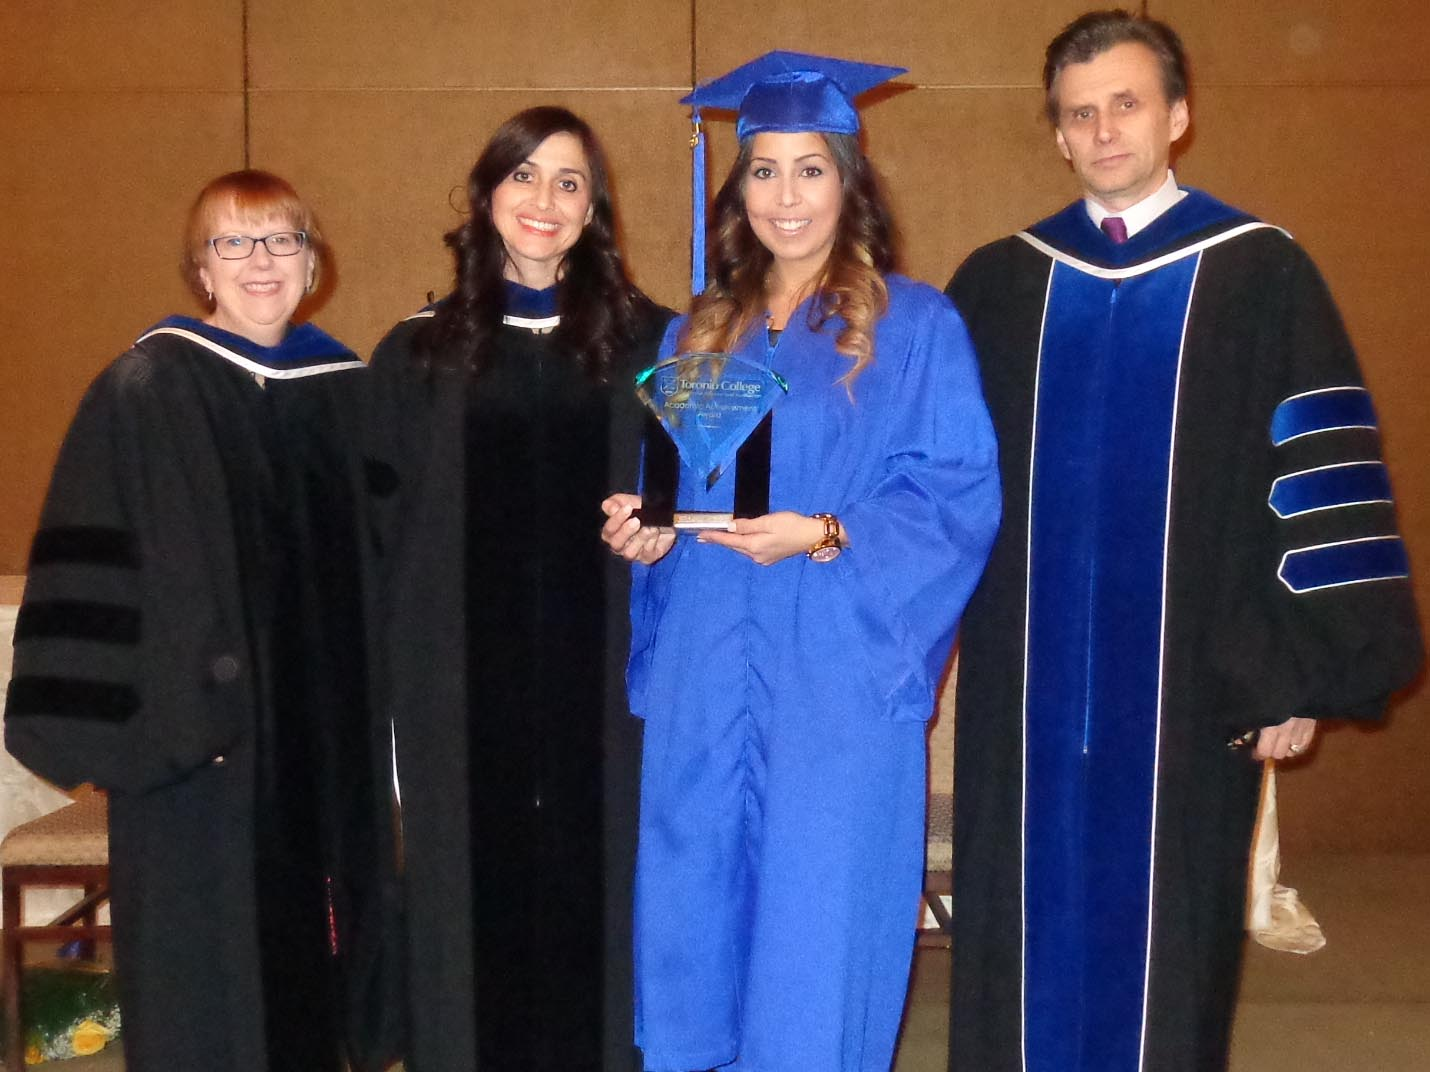 Toronto College of Dental Hygiene Graduation Ceremony 1